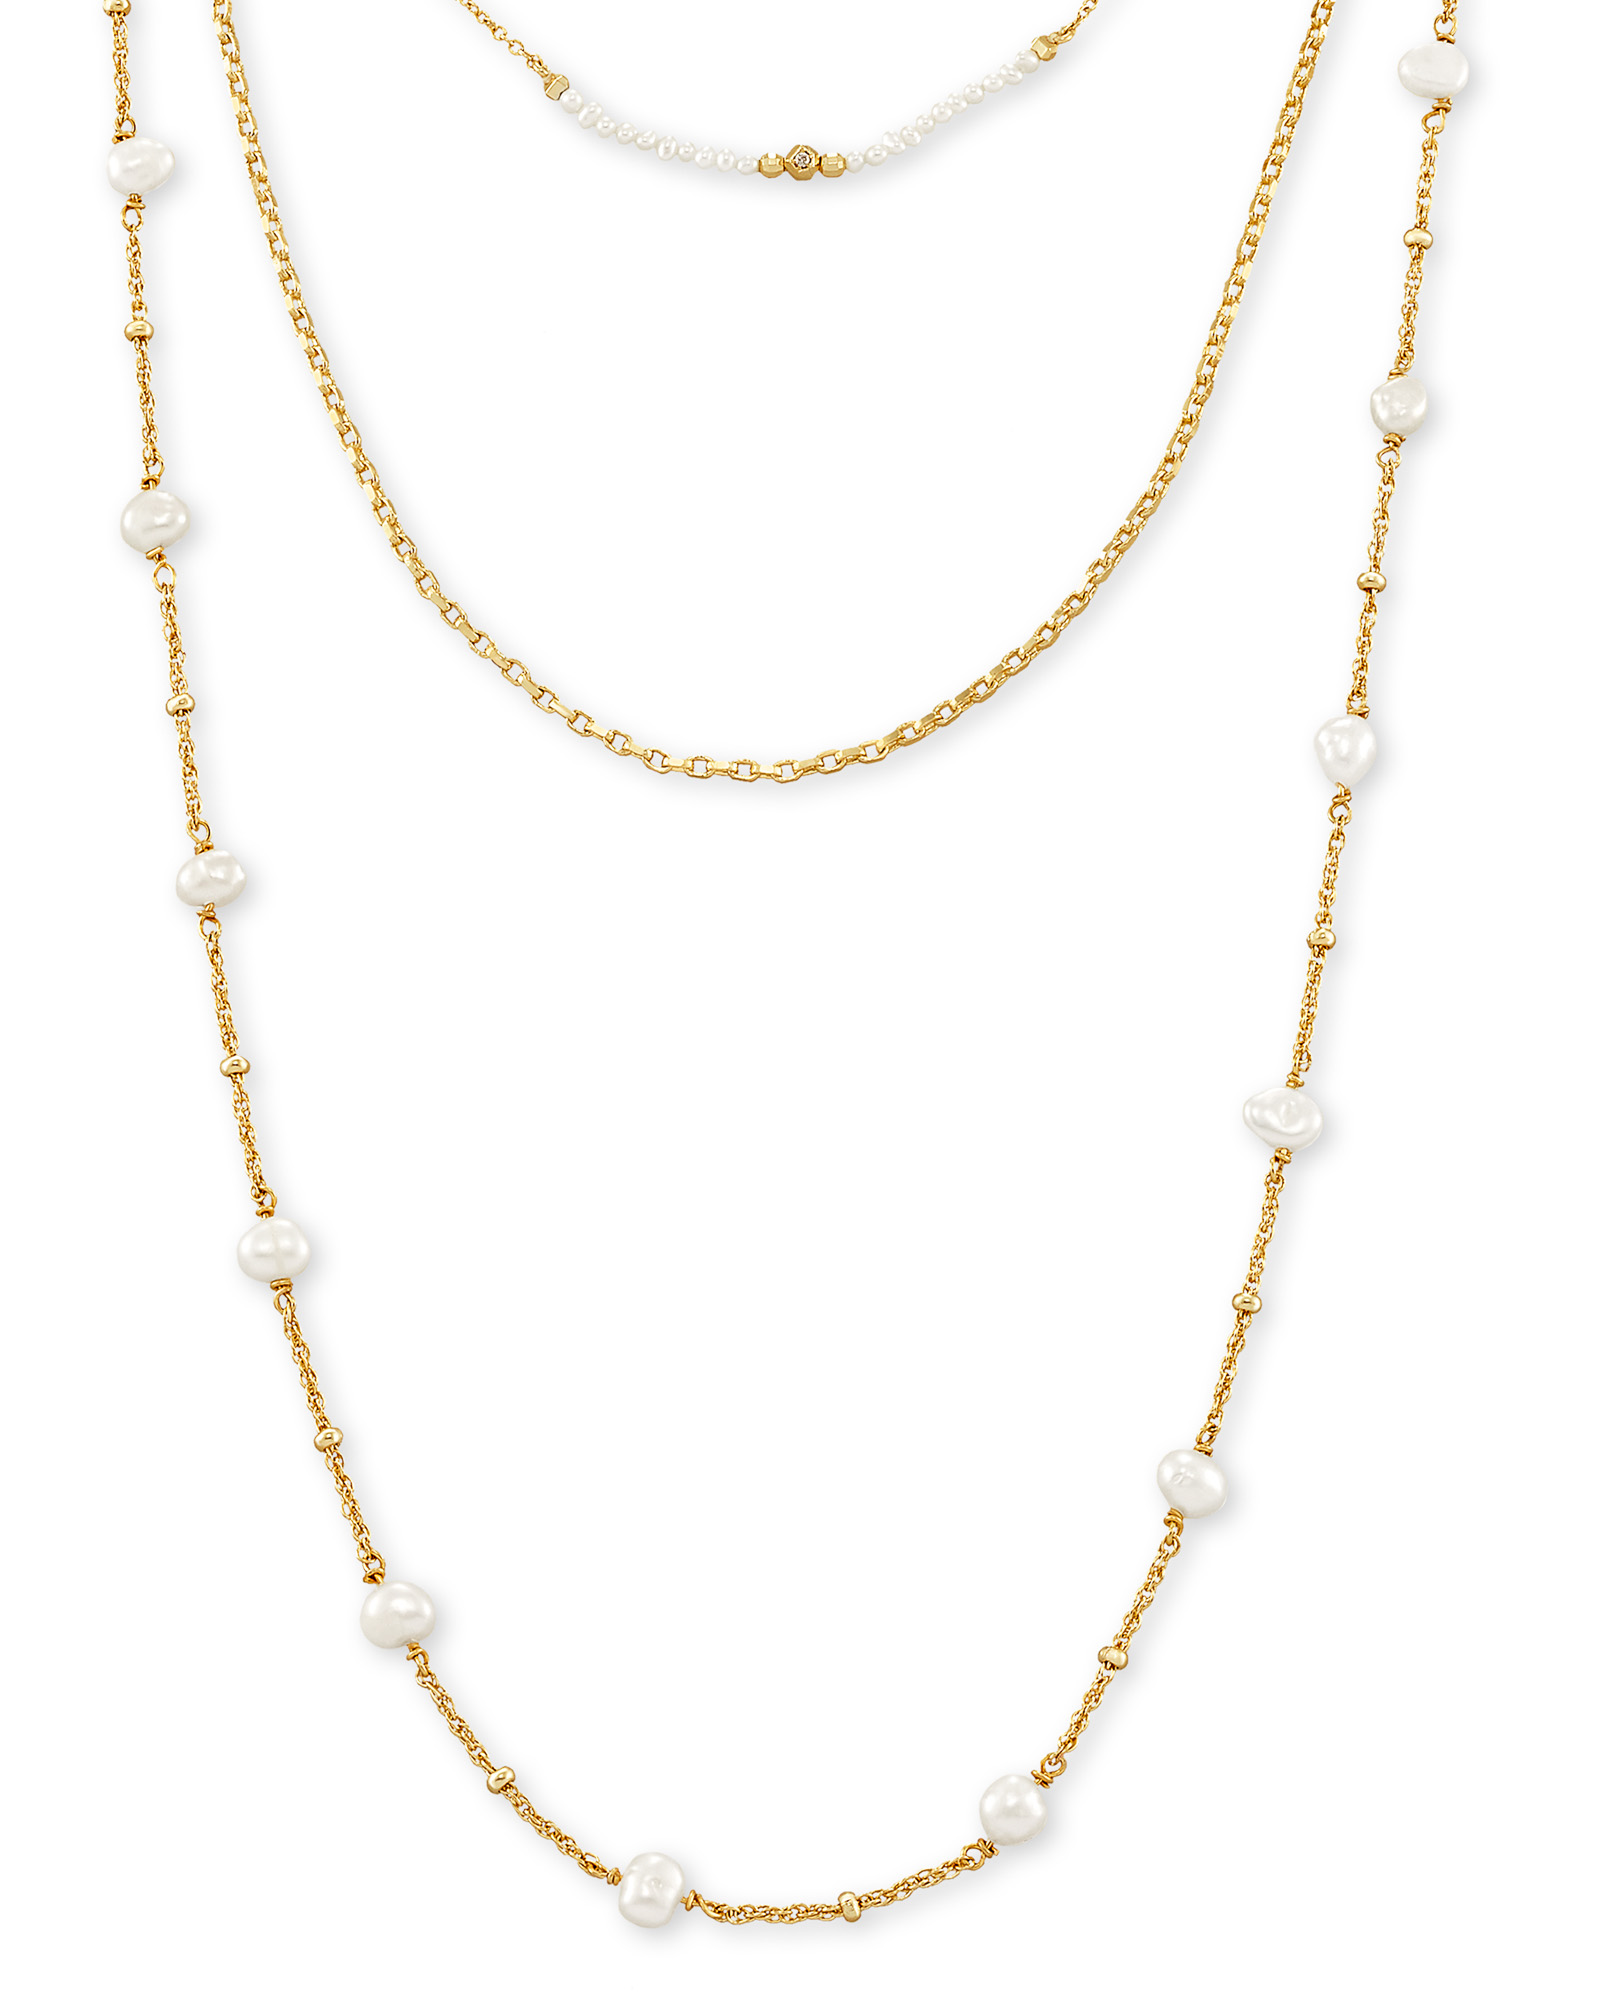 Scarlet Gold Multi Strand Necklace in White Pearl